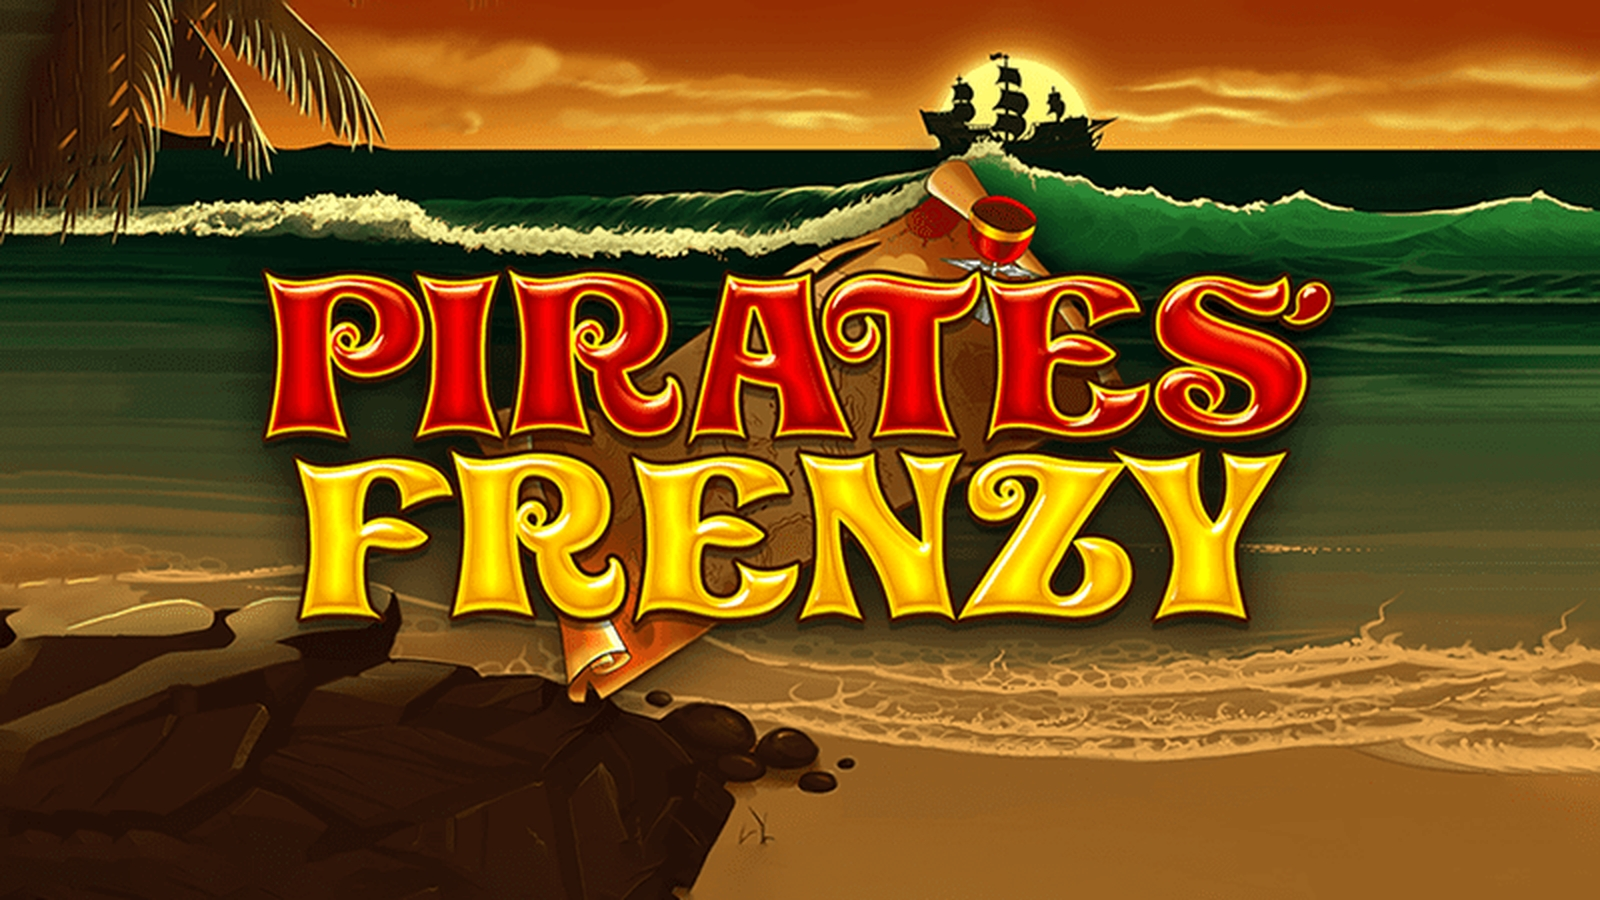 The Pirates Frenzy Online Slot Demo Game by Blueprint Gaming